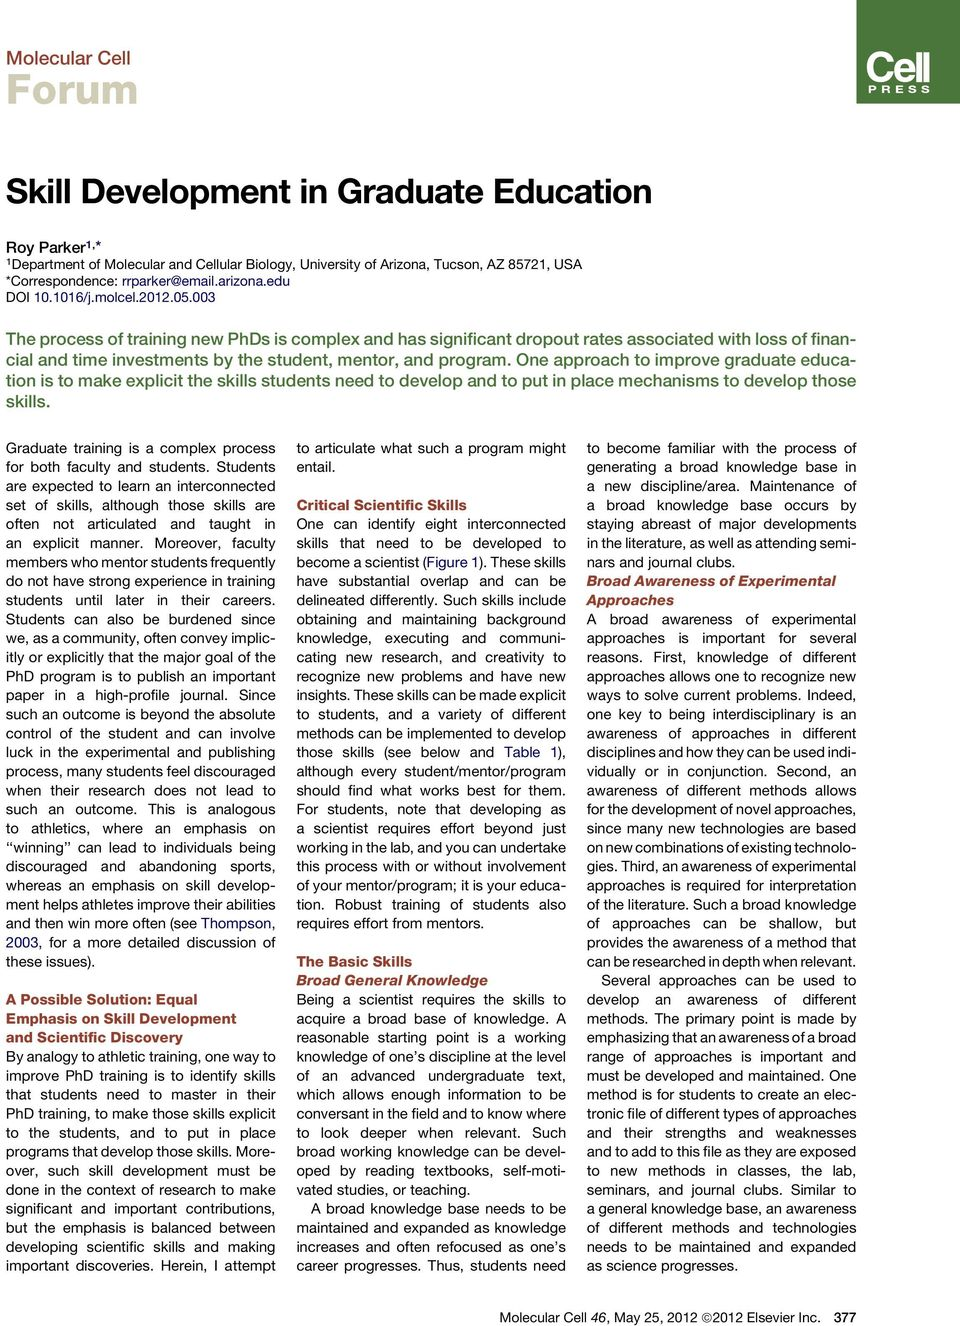 One approach to improve graduate education is to make explicit the skills students need to develop and to put in place mechanisms to develop those skills.